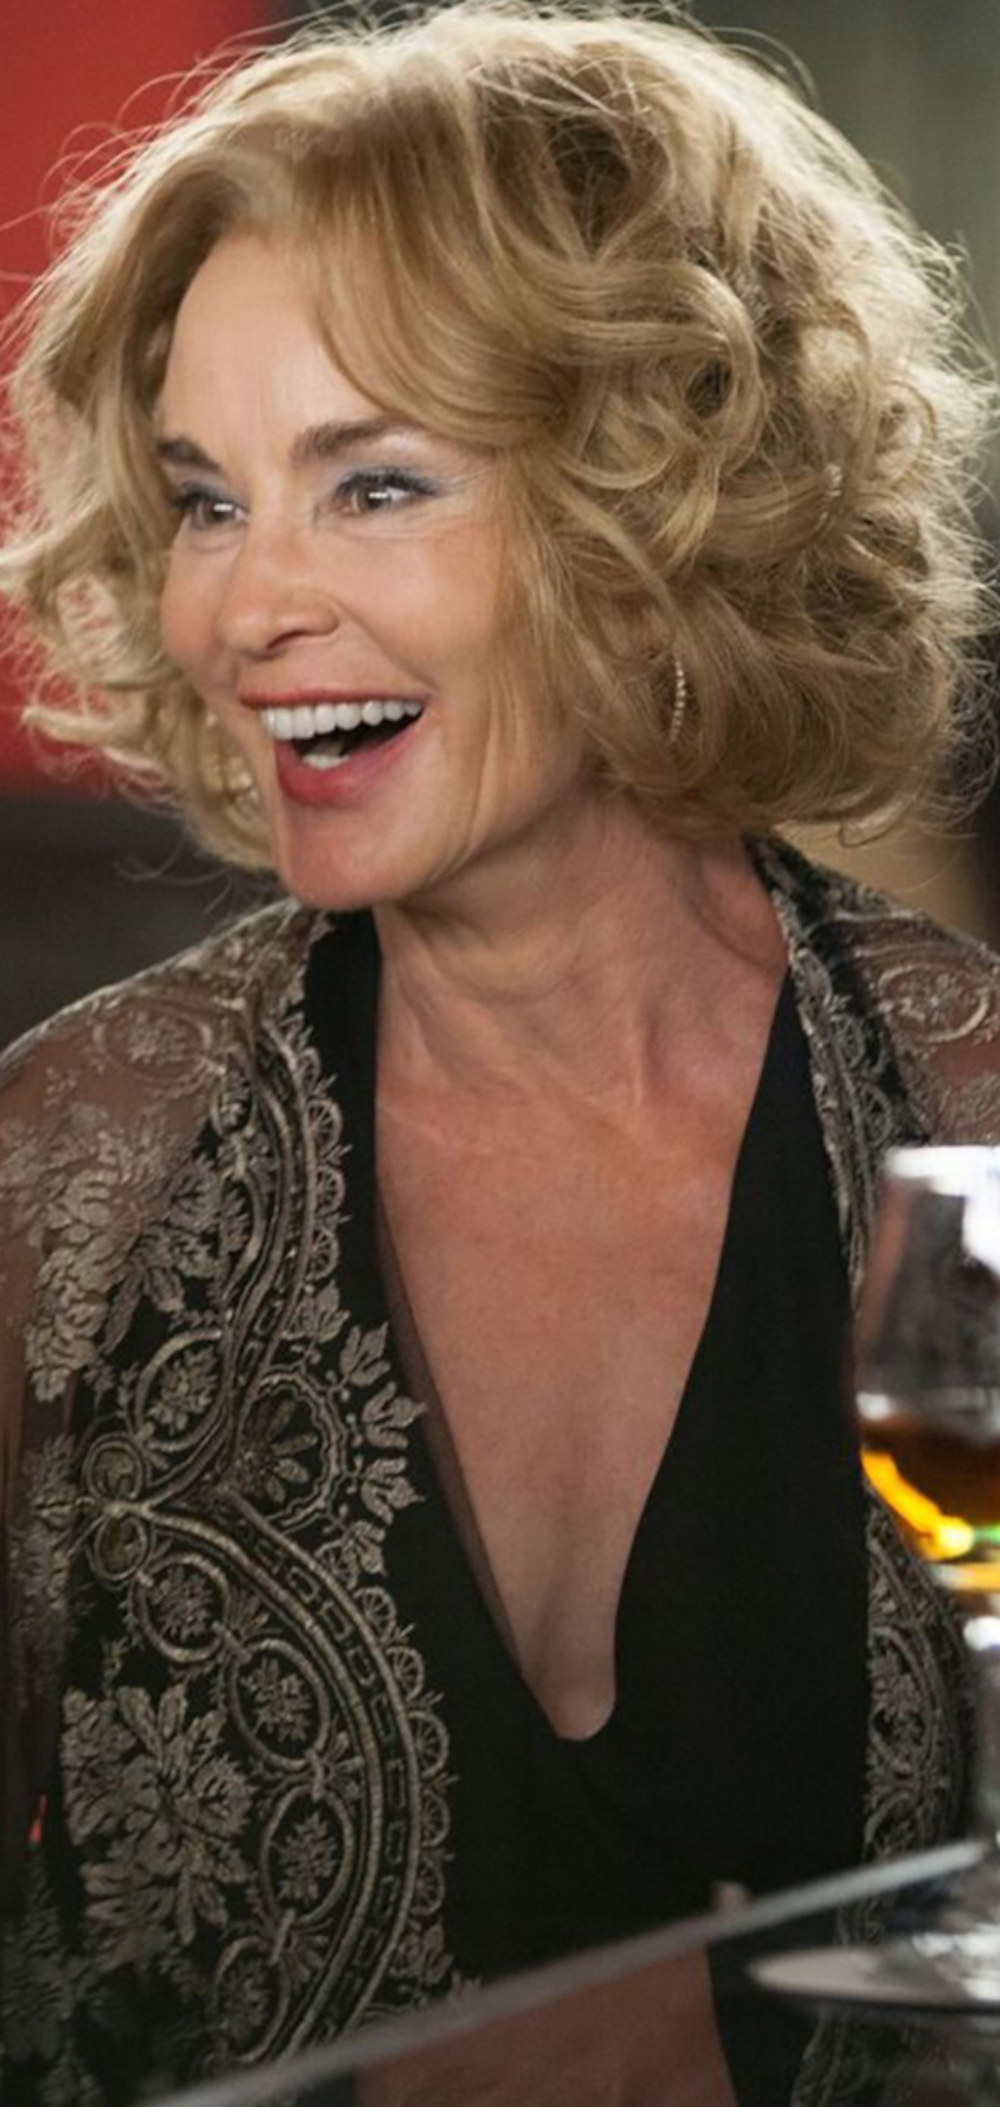 Jessica Lange laughing at a bar while wearing a dress and shawl